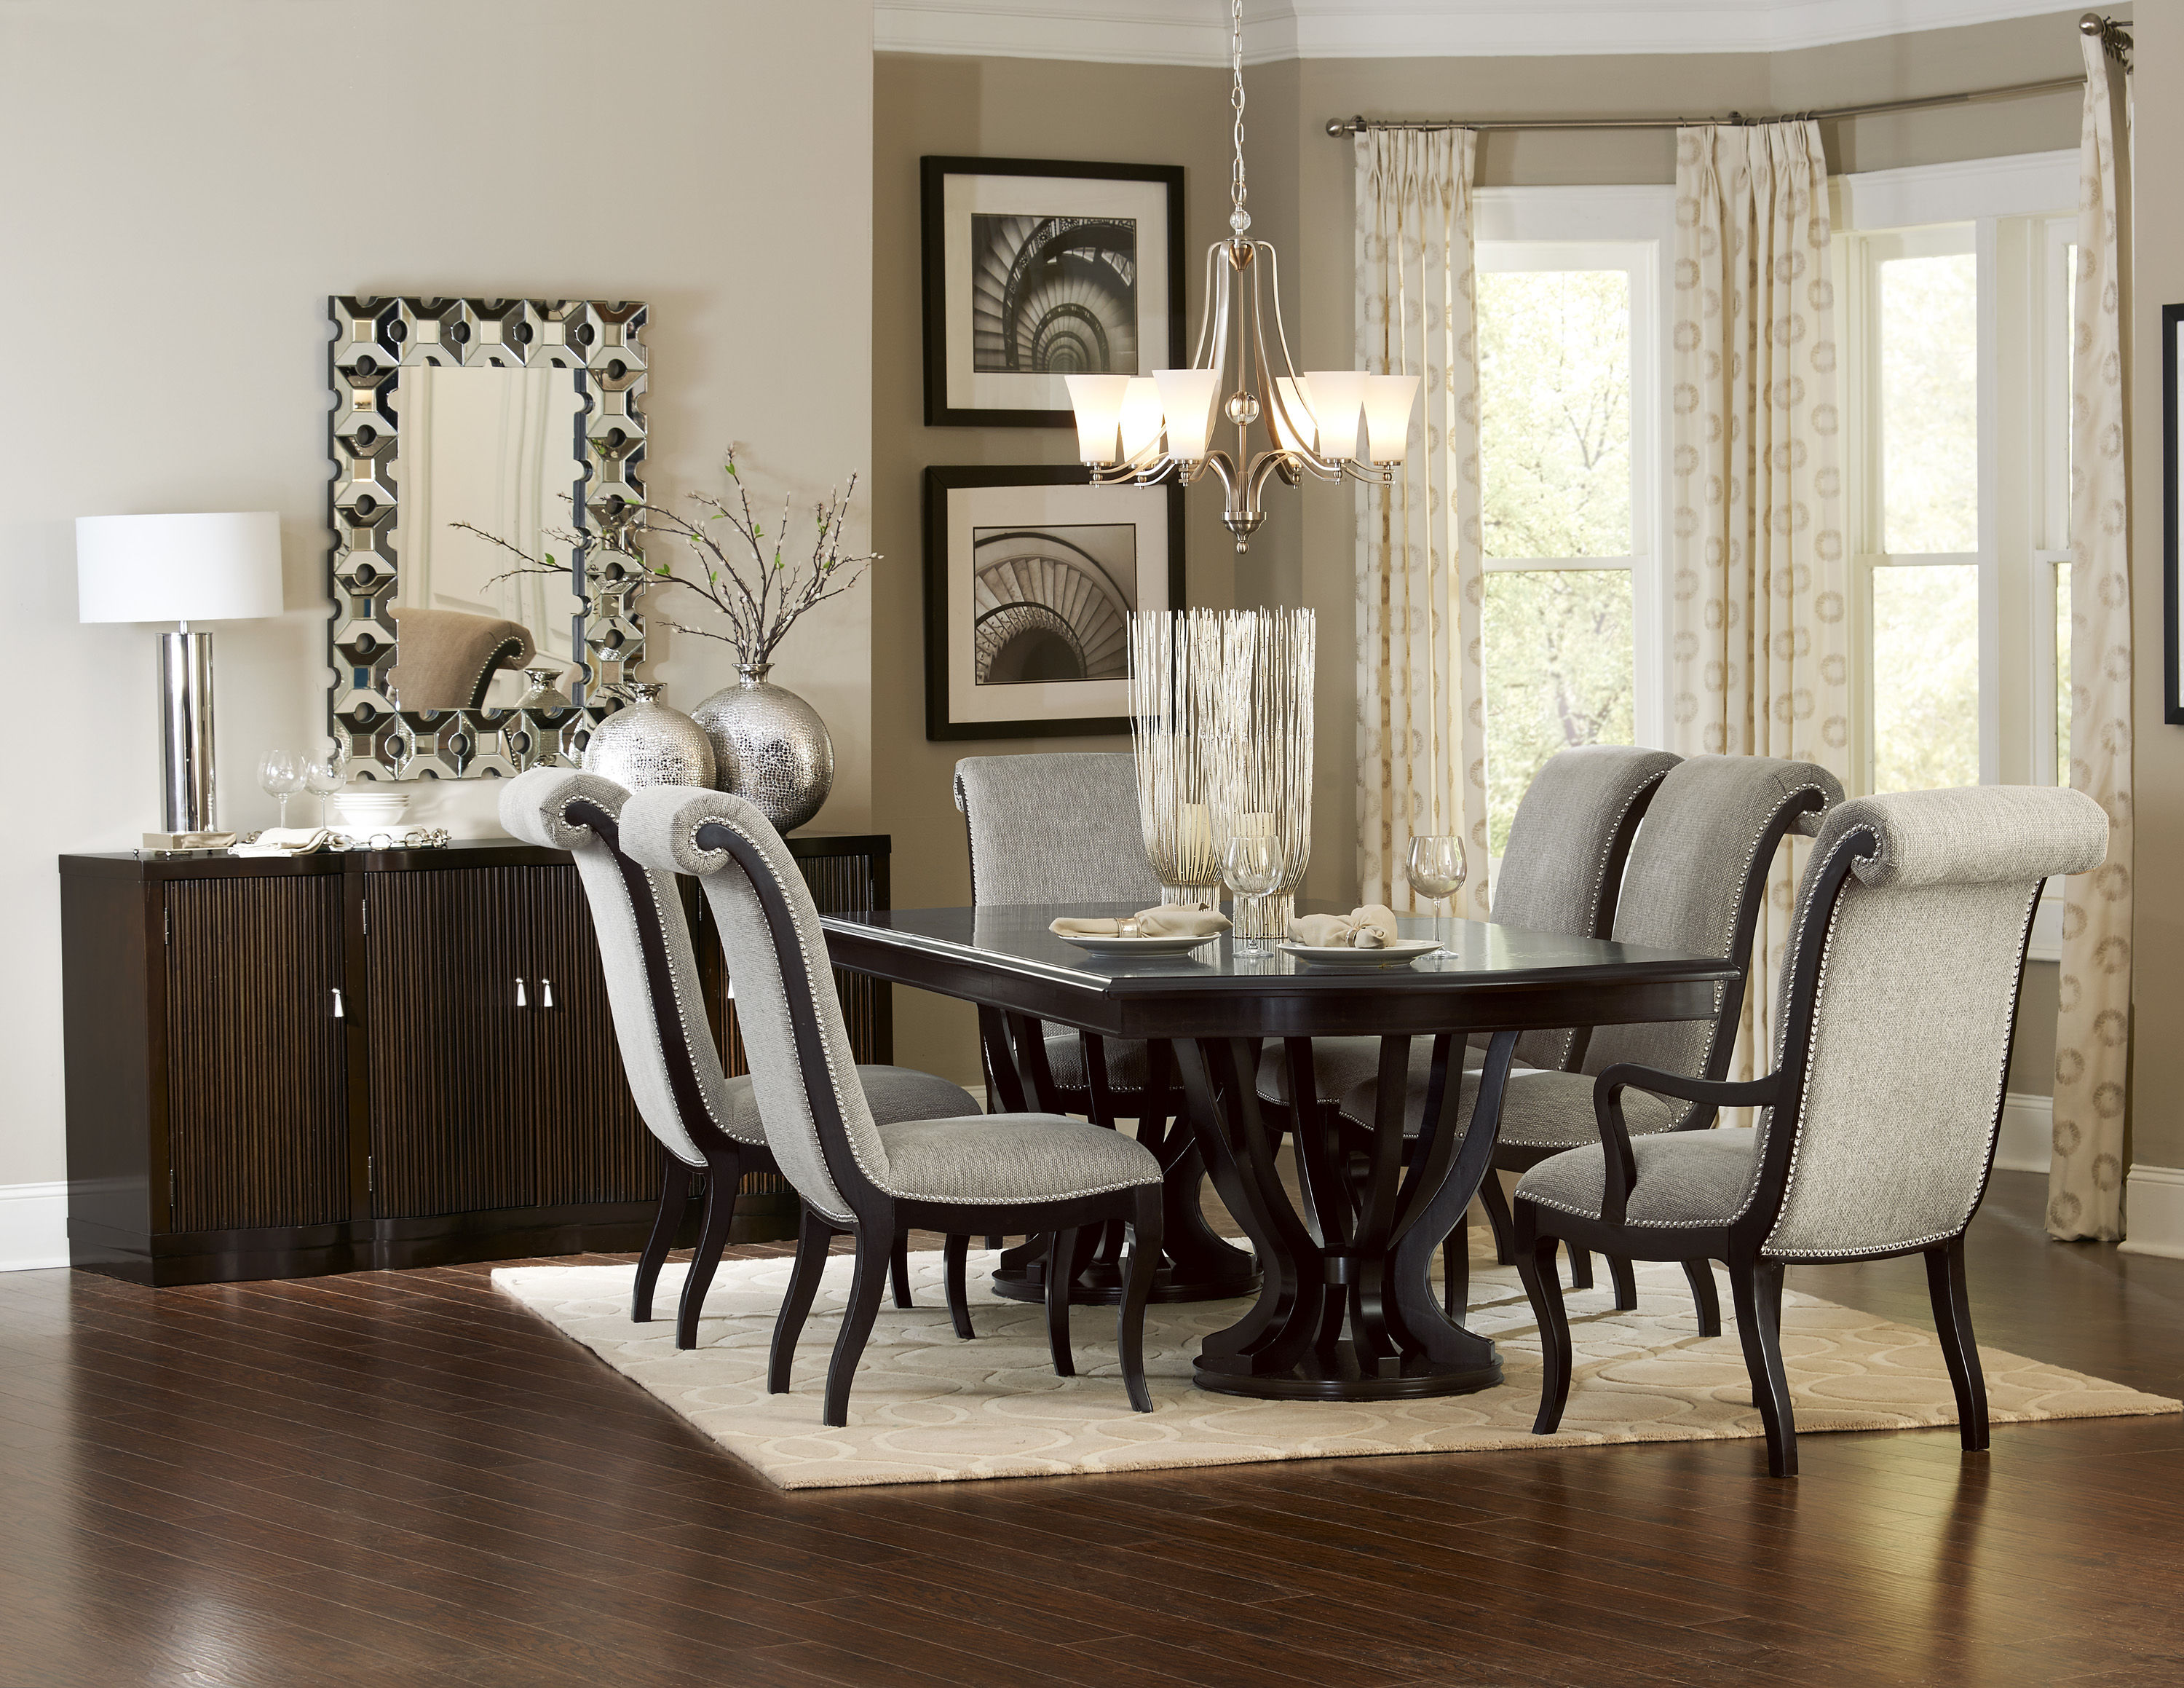 Home Elegance Savion Espresso 7pc Dining Room Set